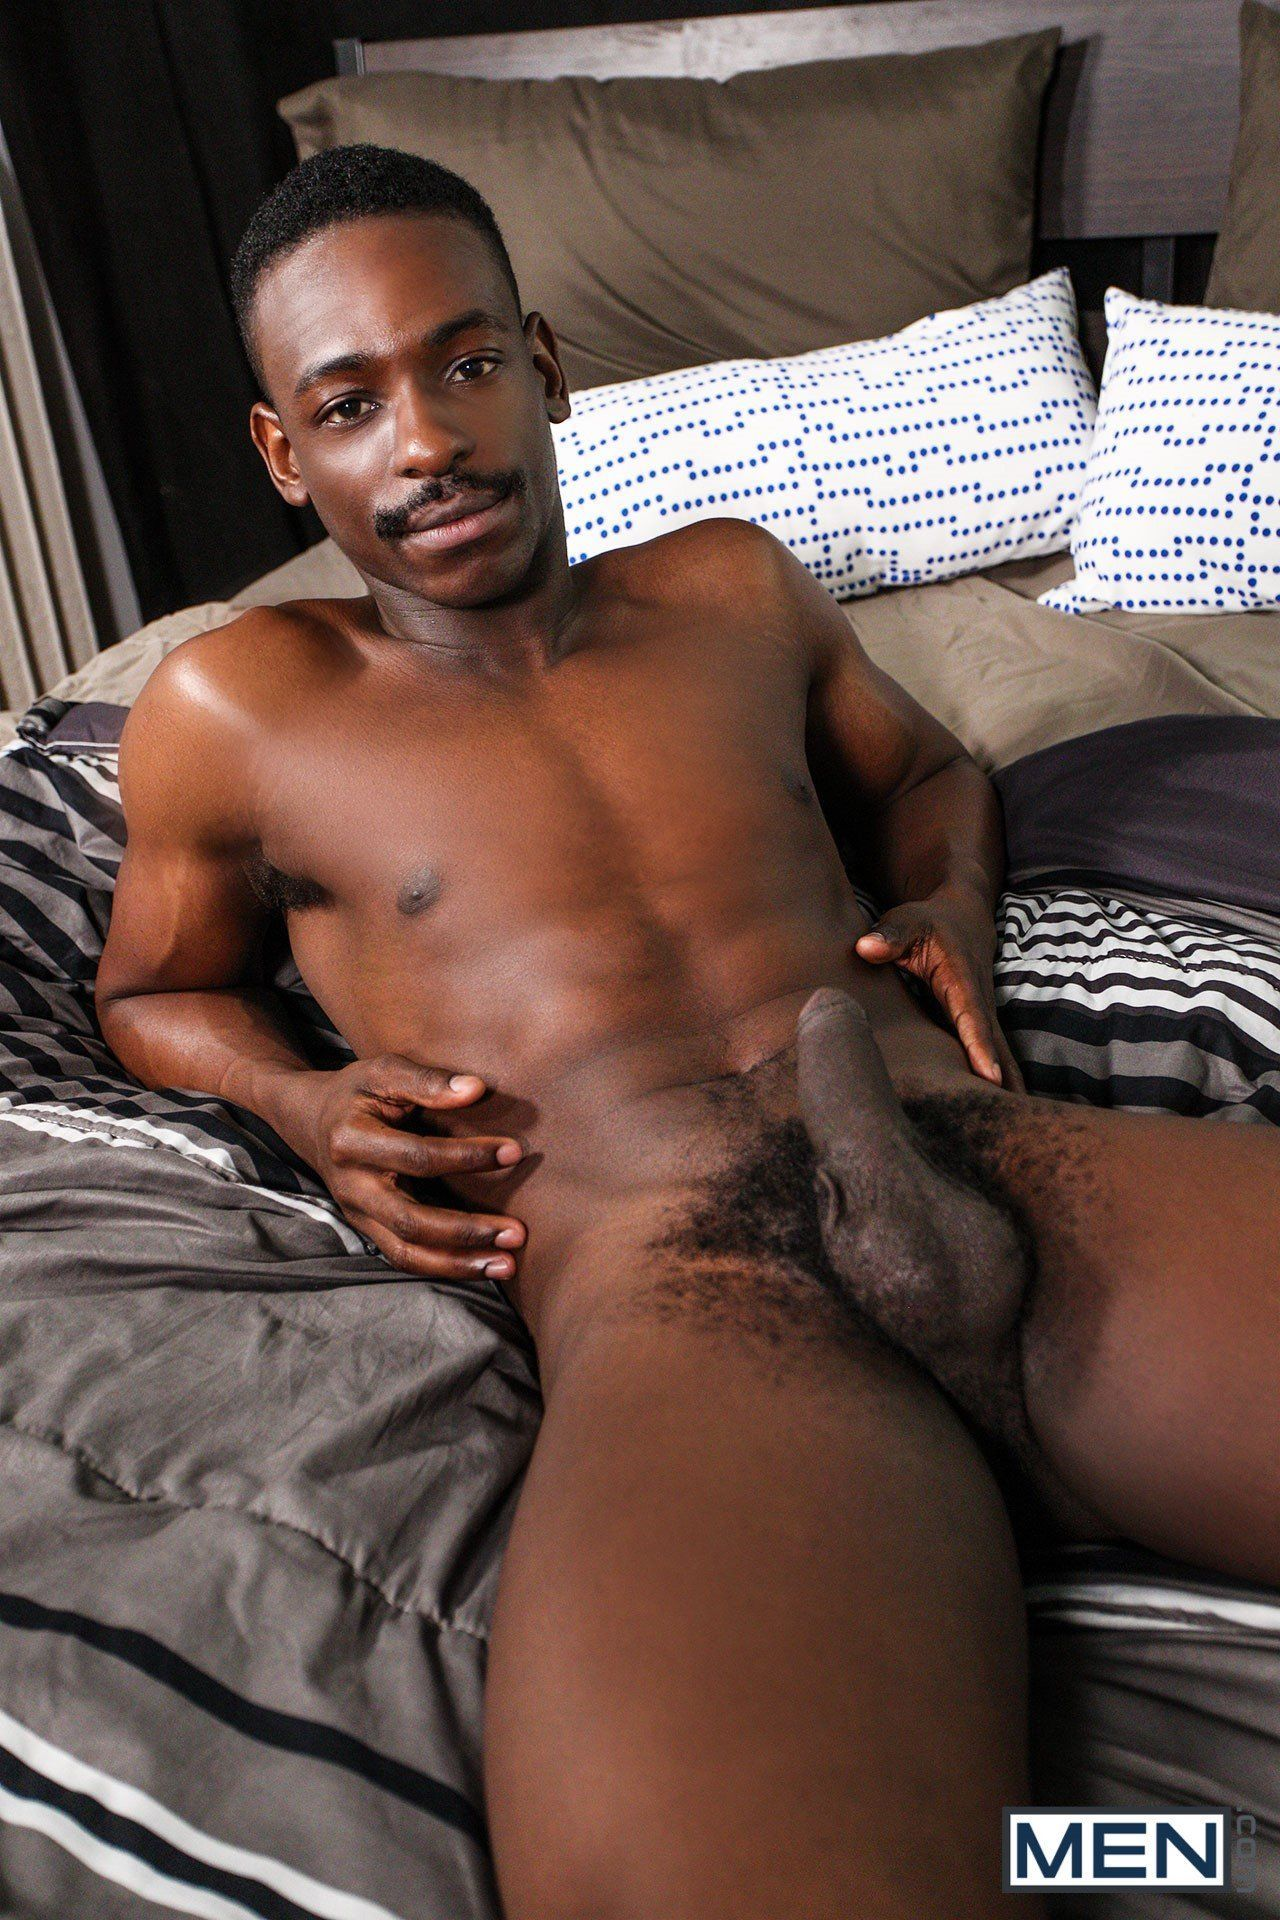 Dick gallery big blacks photo you